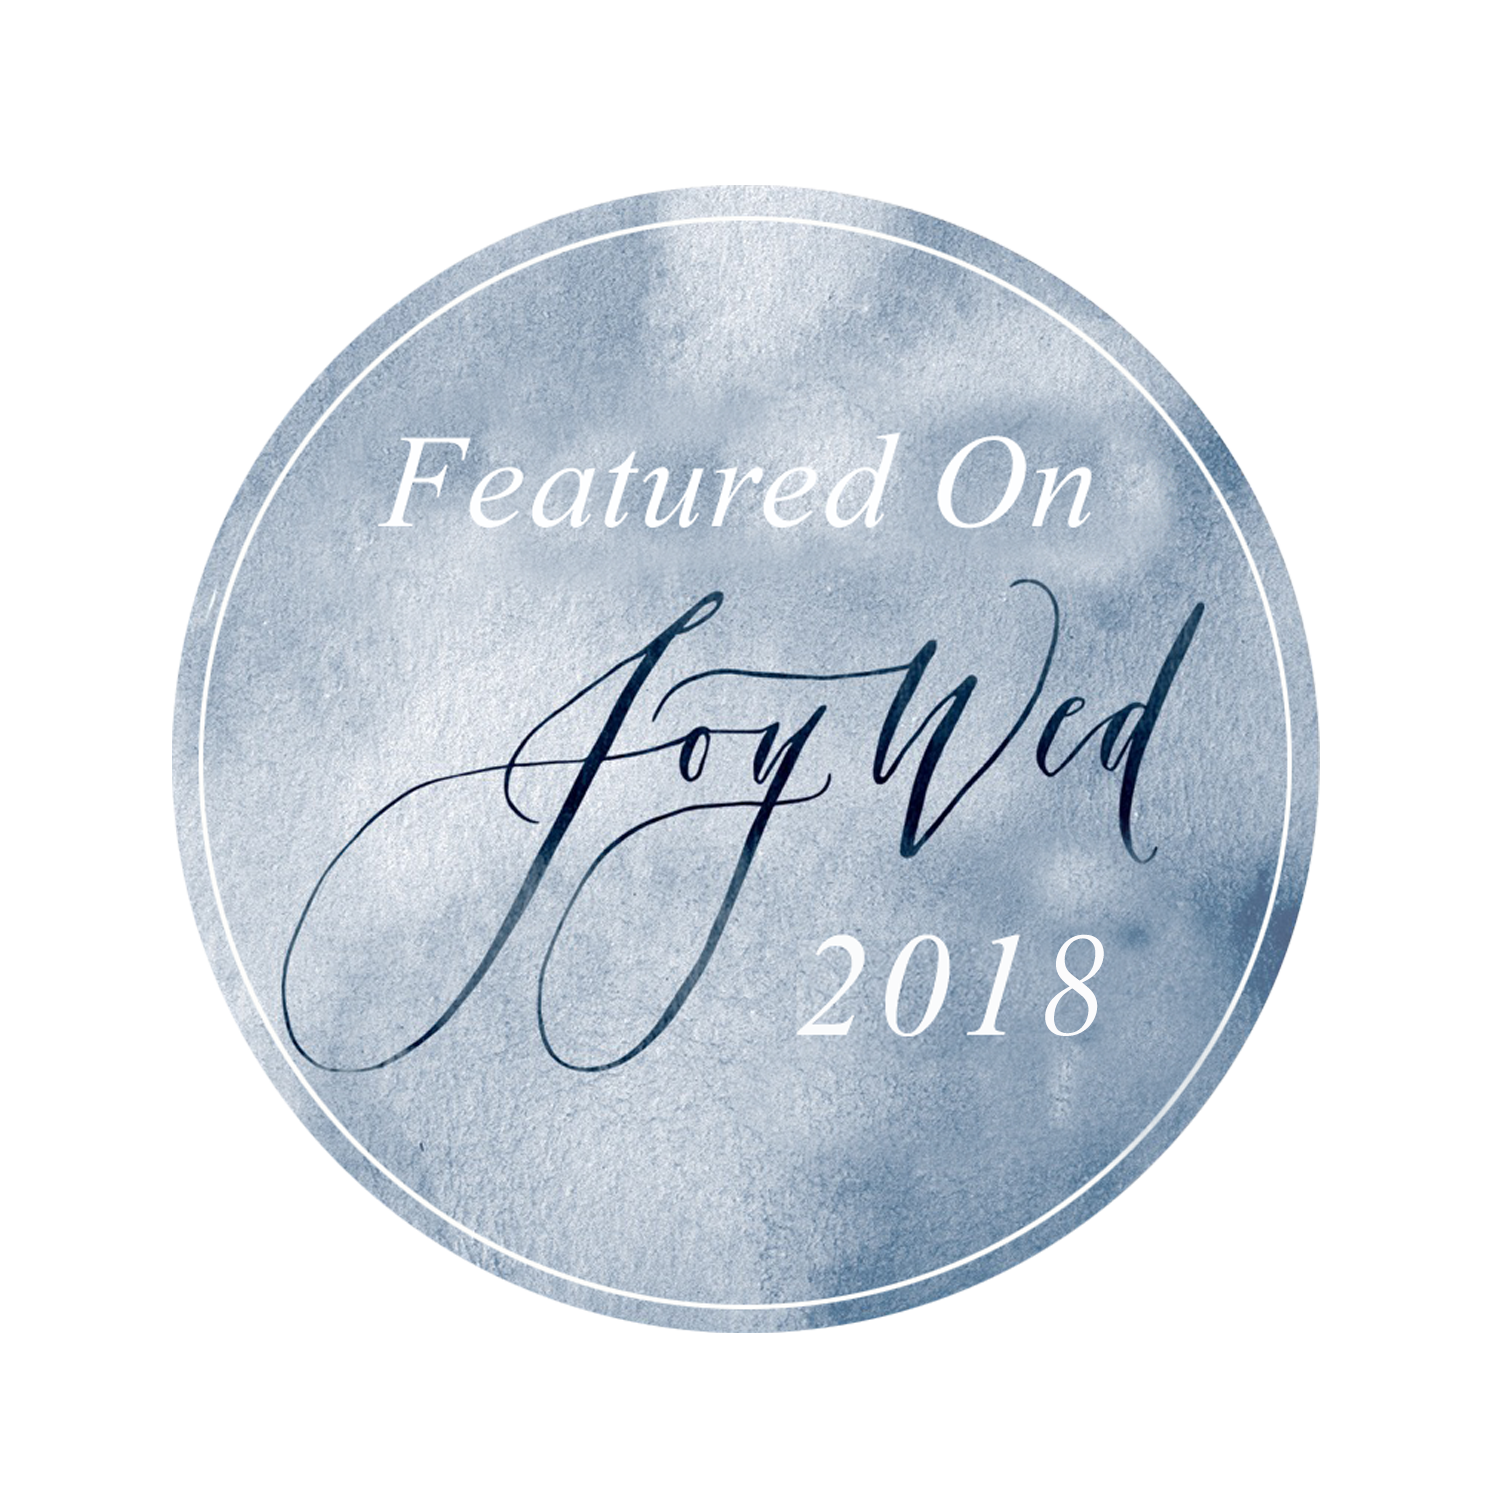 Joy Wed Badge- Featured On 2018.png